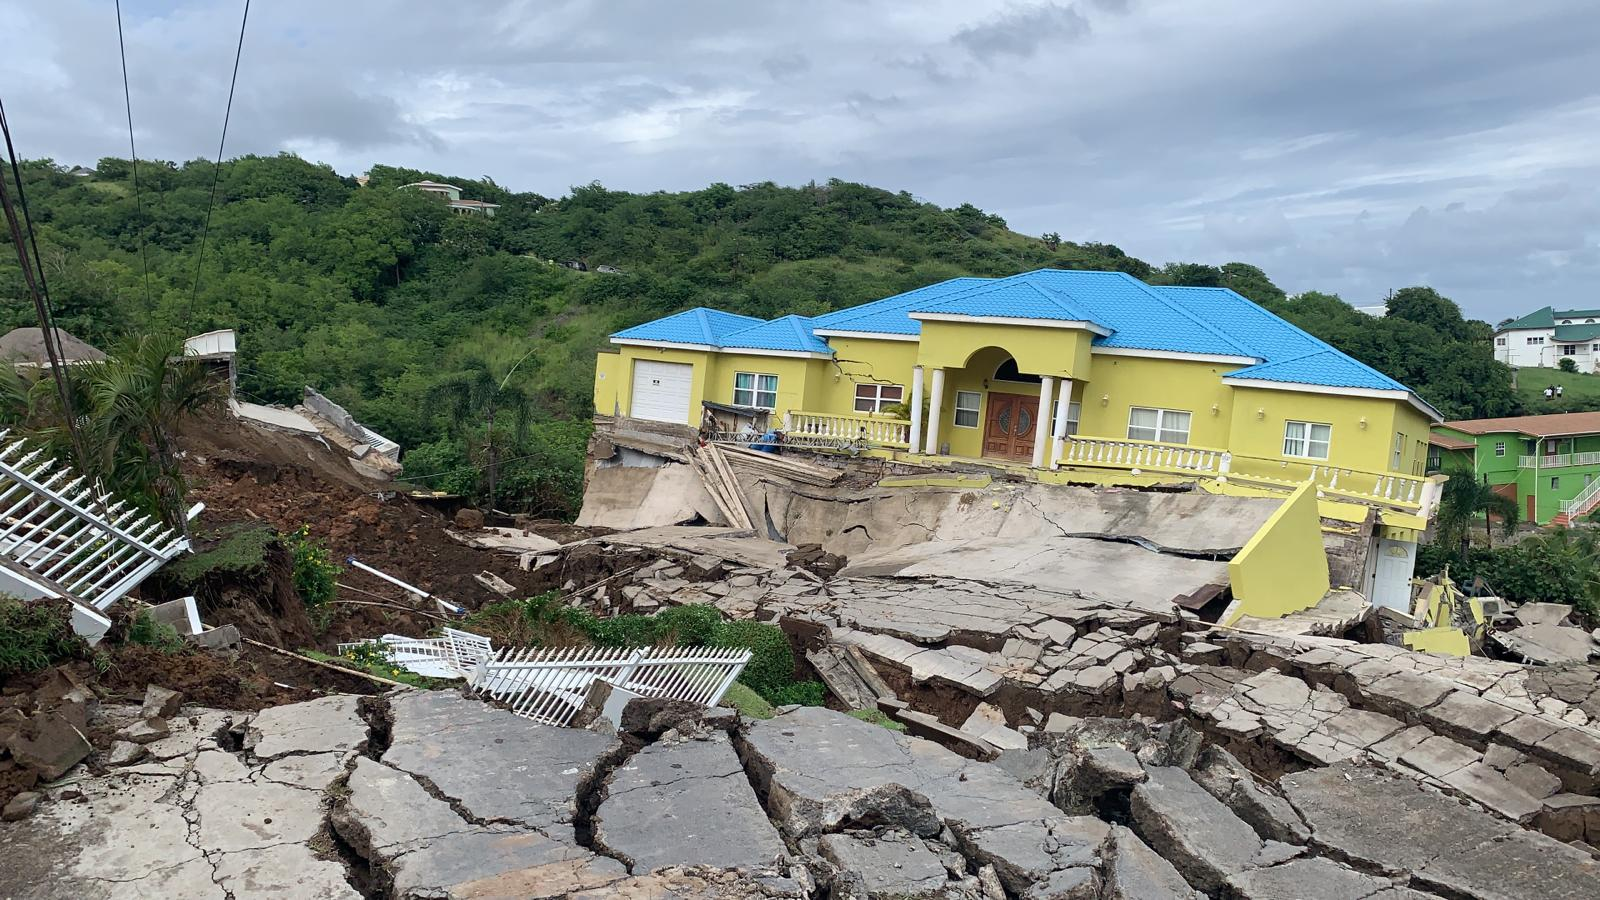 Landslide occurred in Fort Tyson, St. Kitts